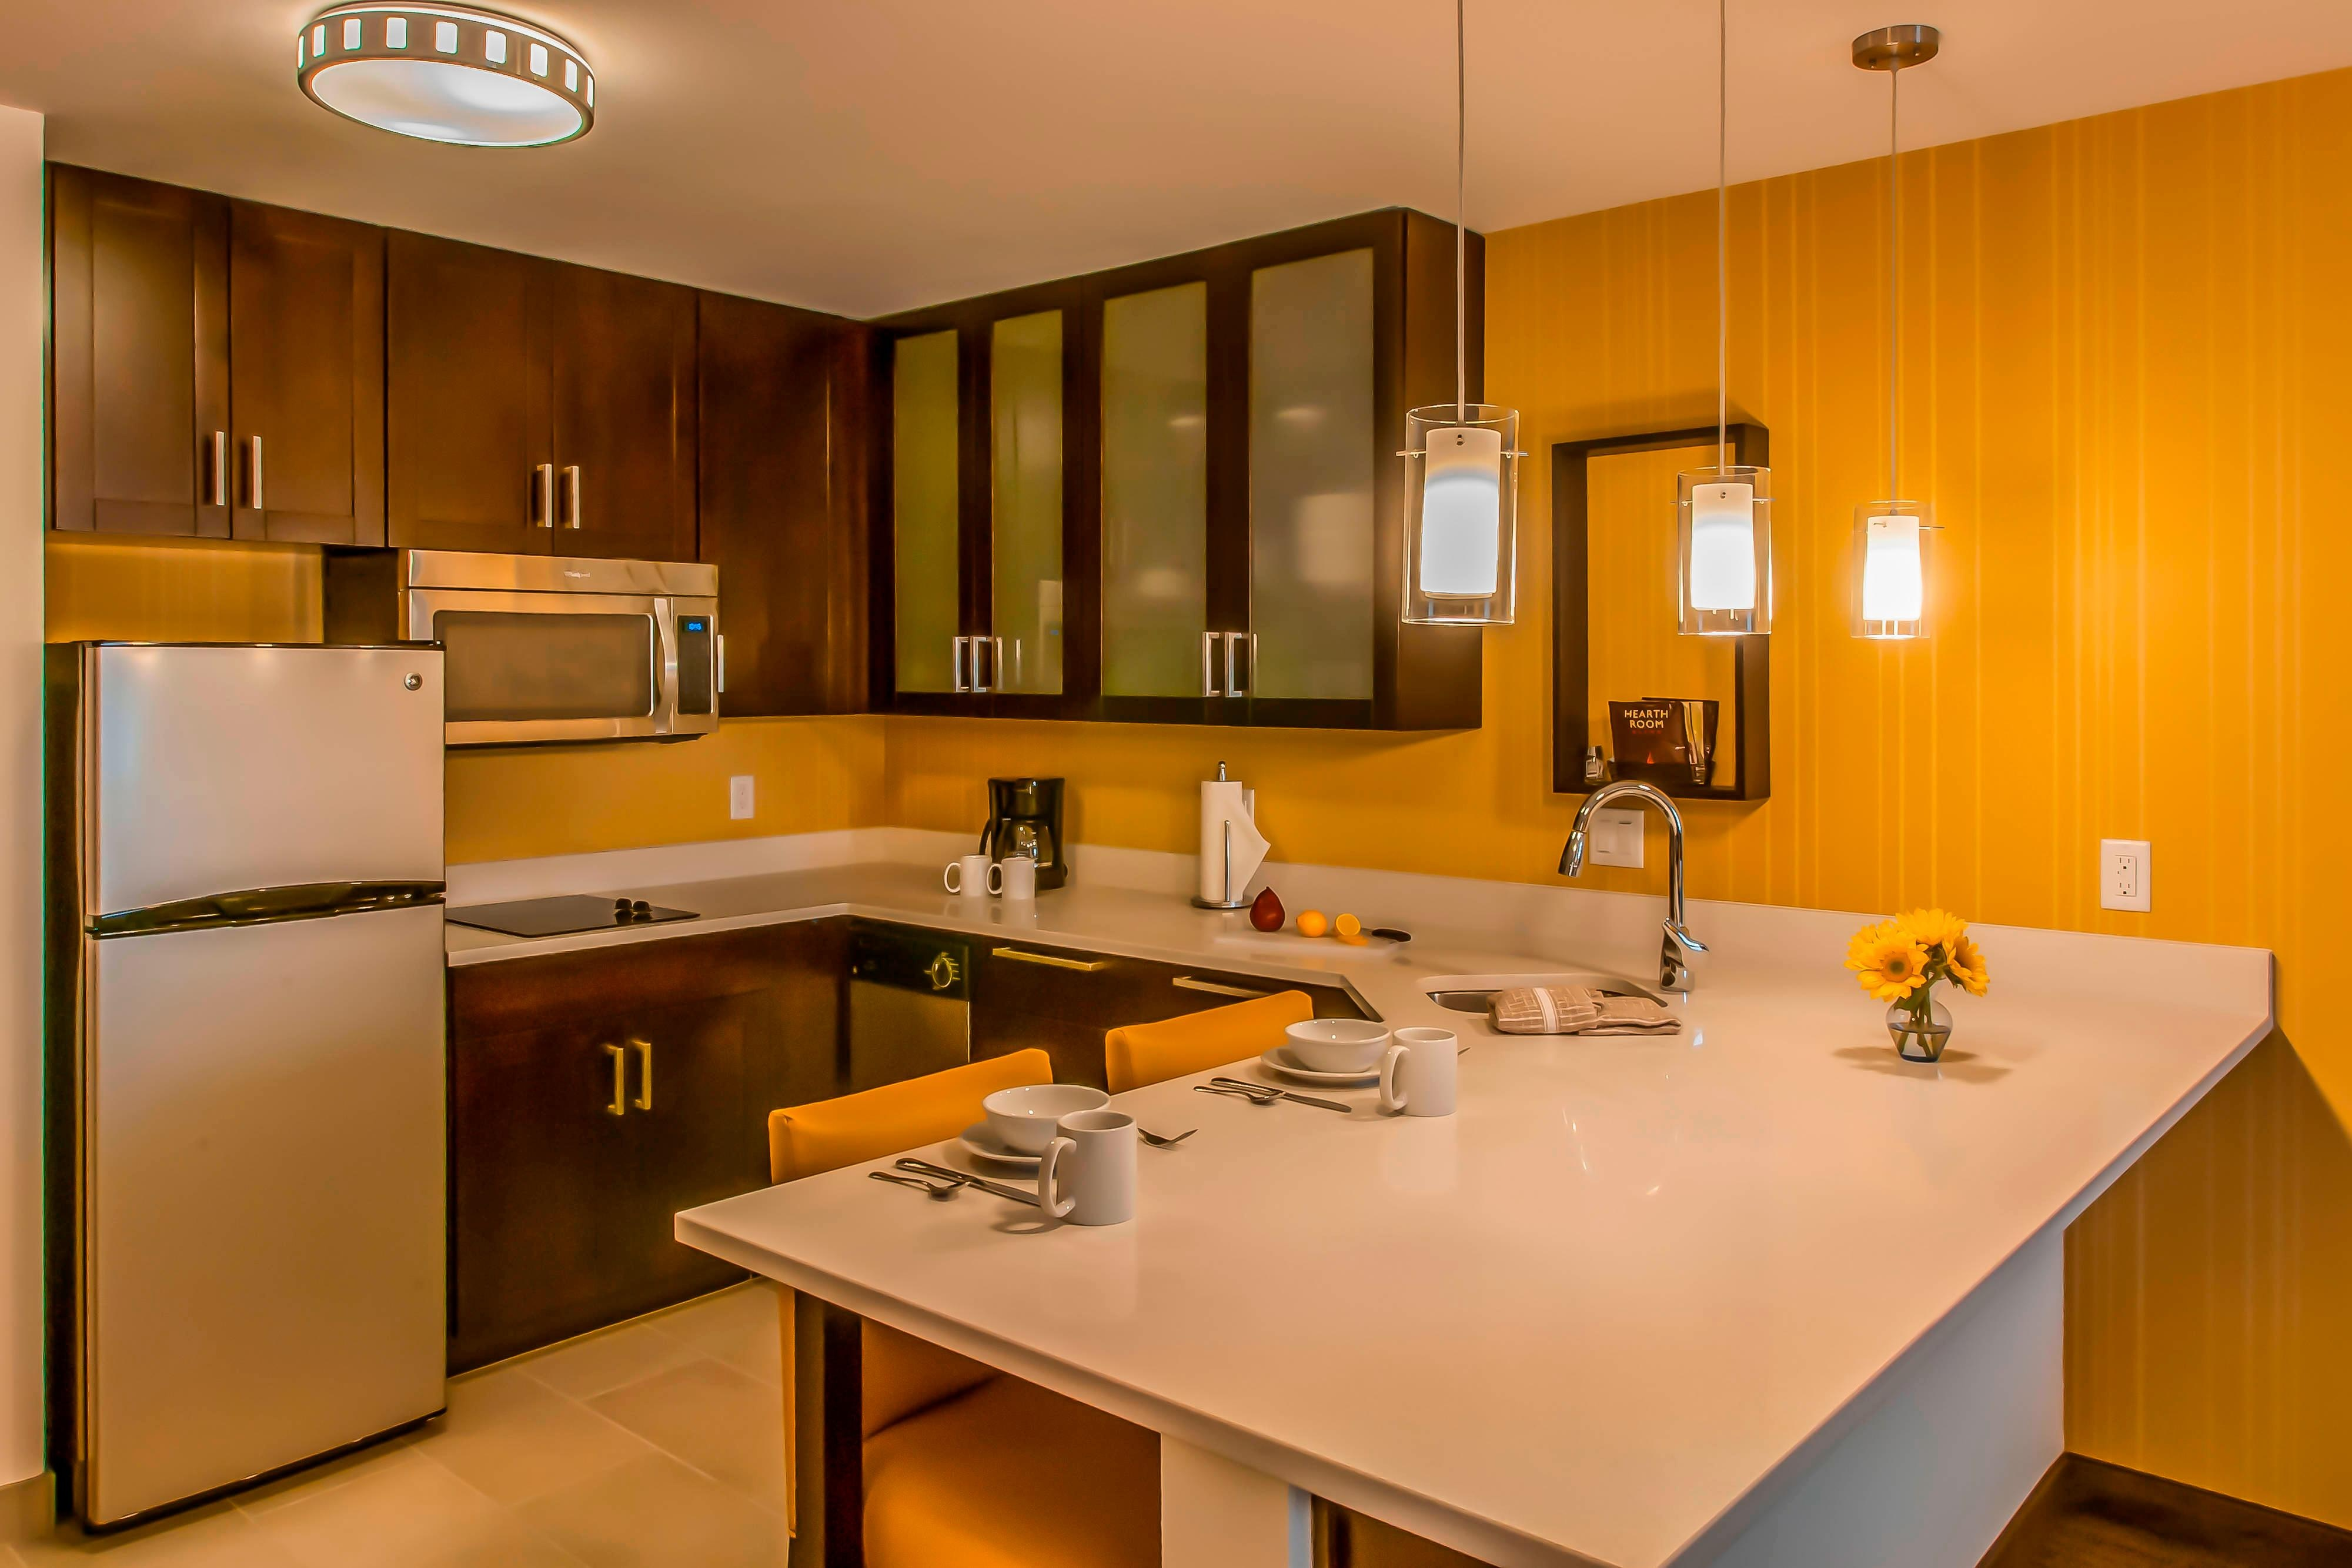 Queen/Queen One-Bedroom Suite Kitchen